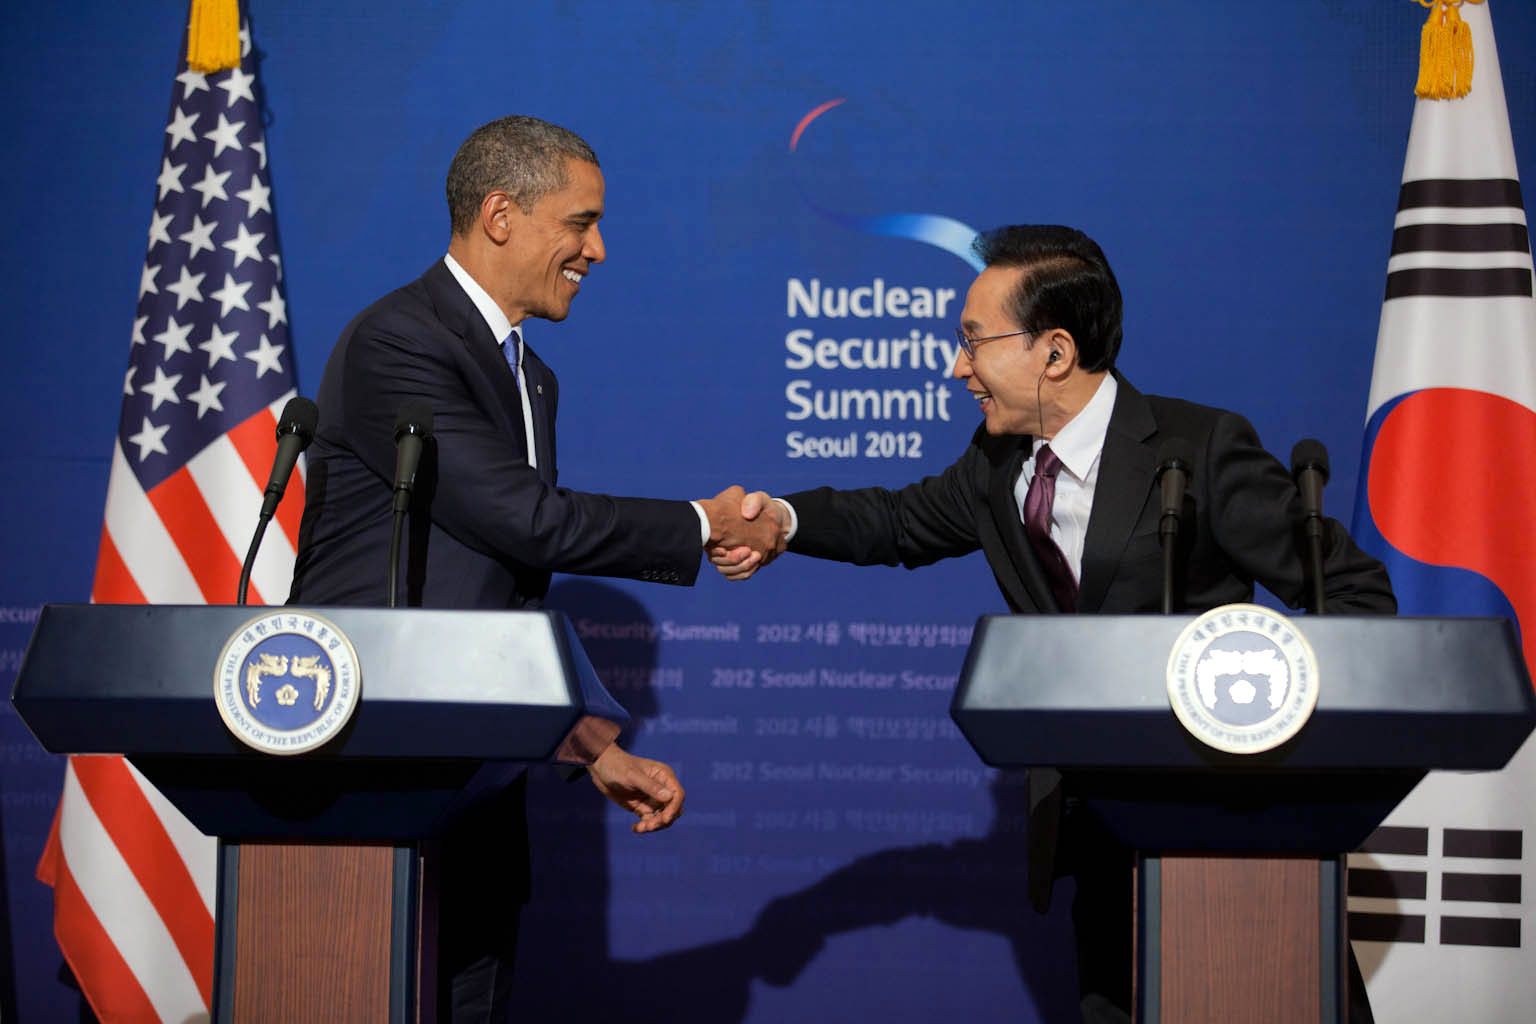 President Barack Obama and President Lee Myung-bak (March 25, 2012)